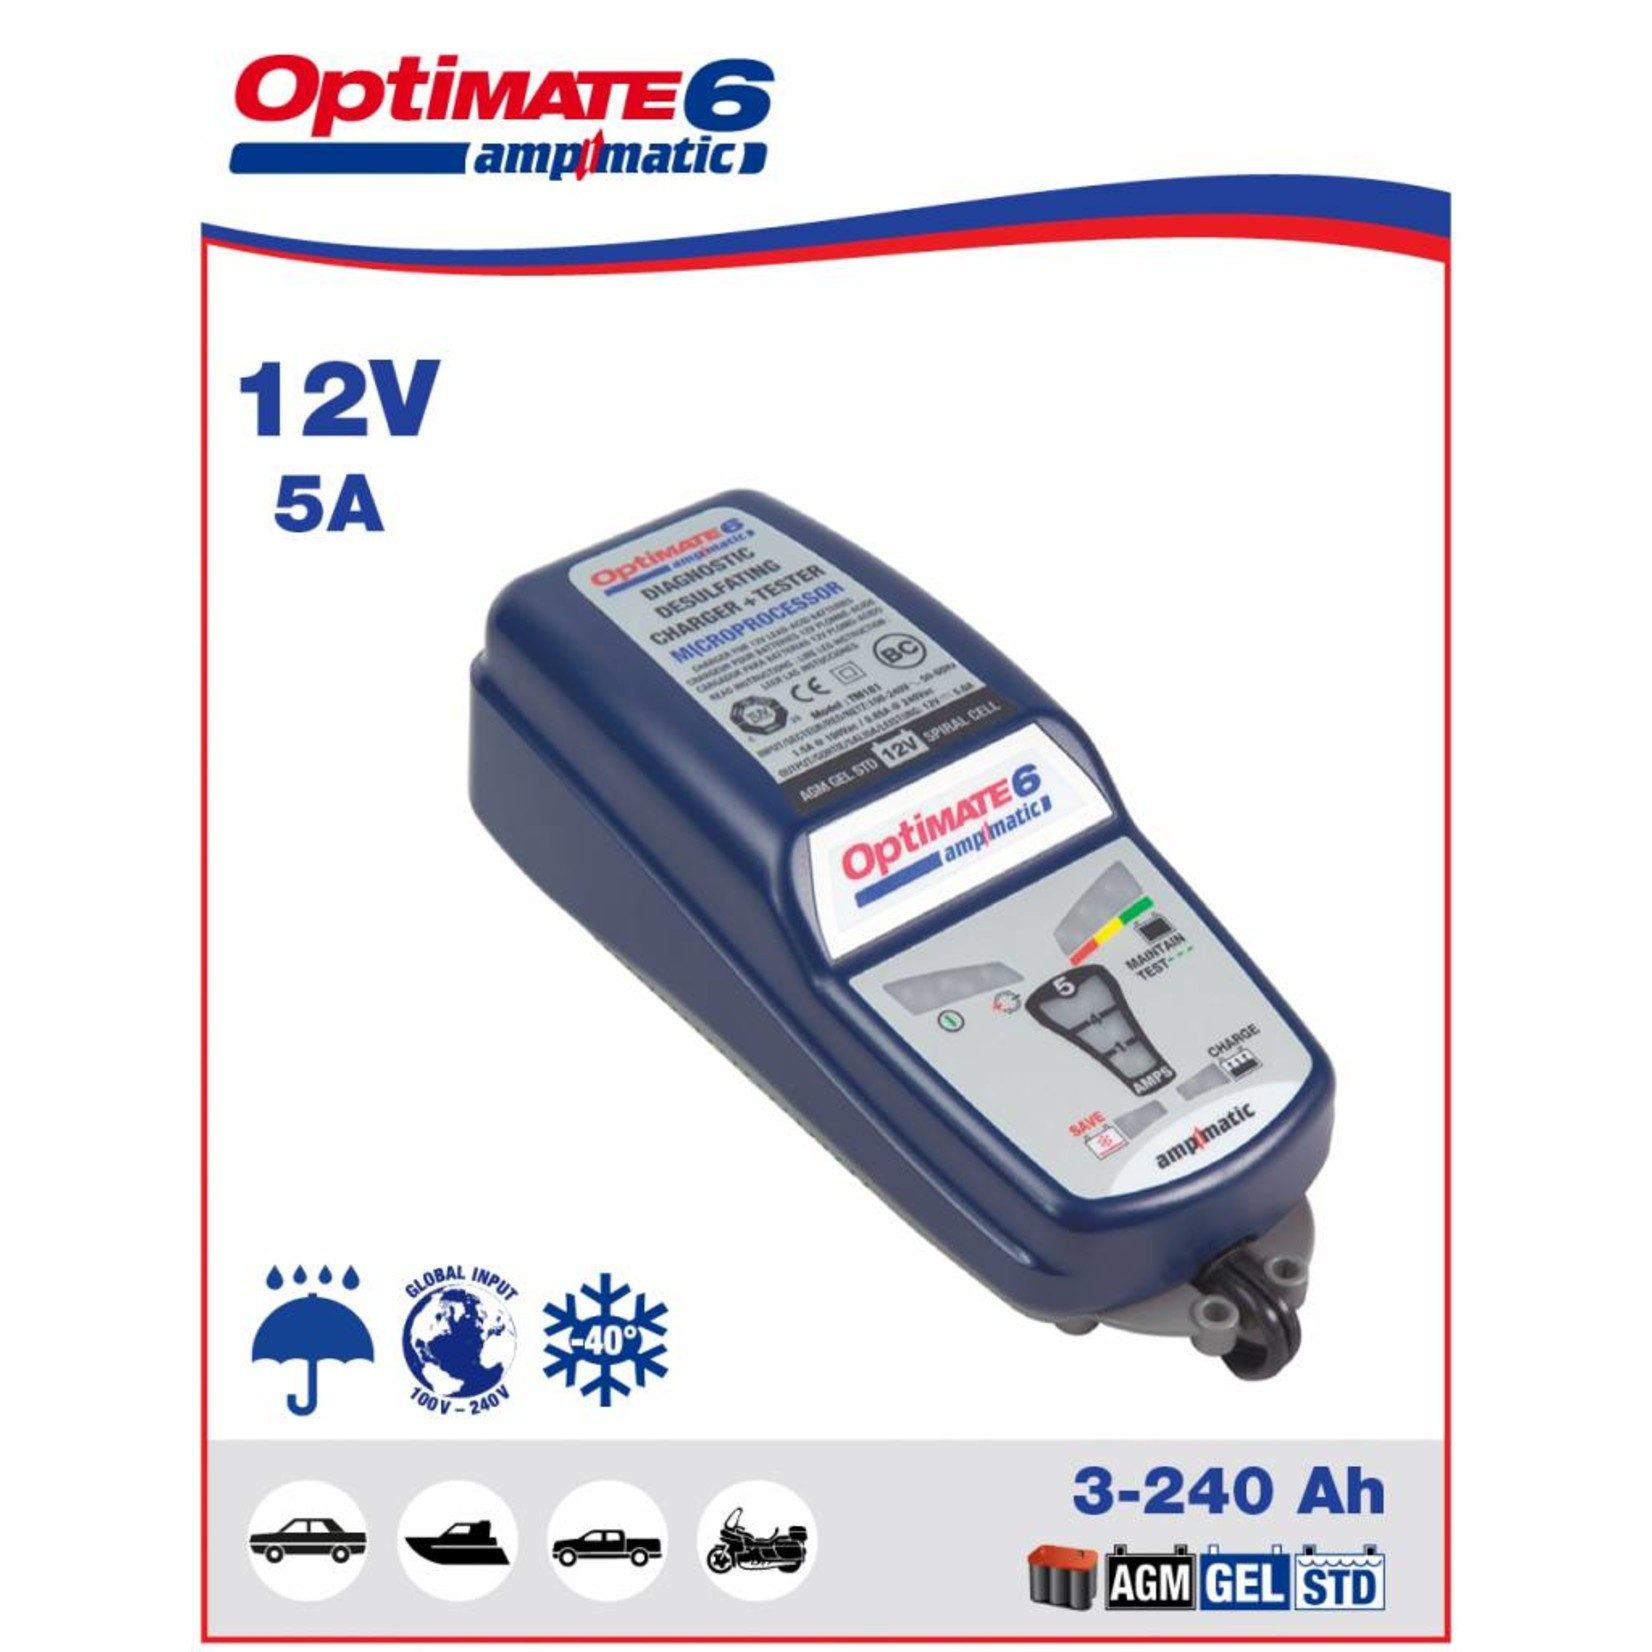 OptiMate OptiMate 6 Ampmatic - Battery Charger 12V